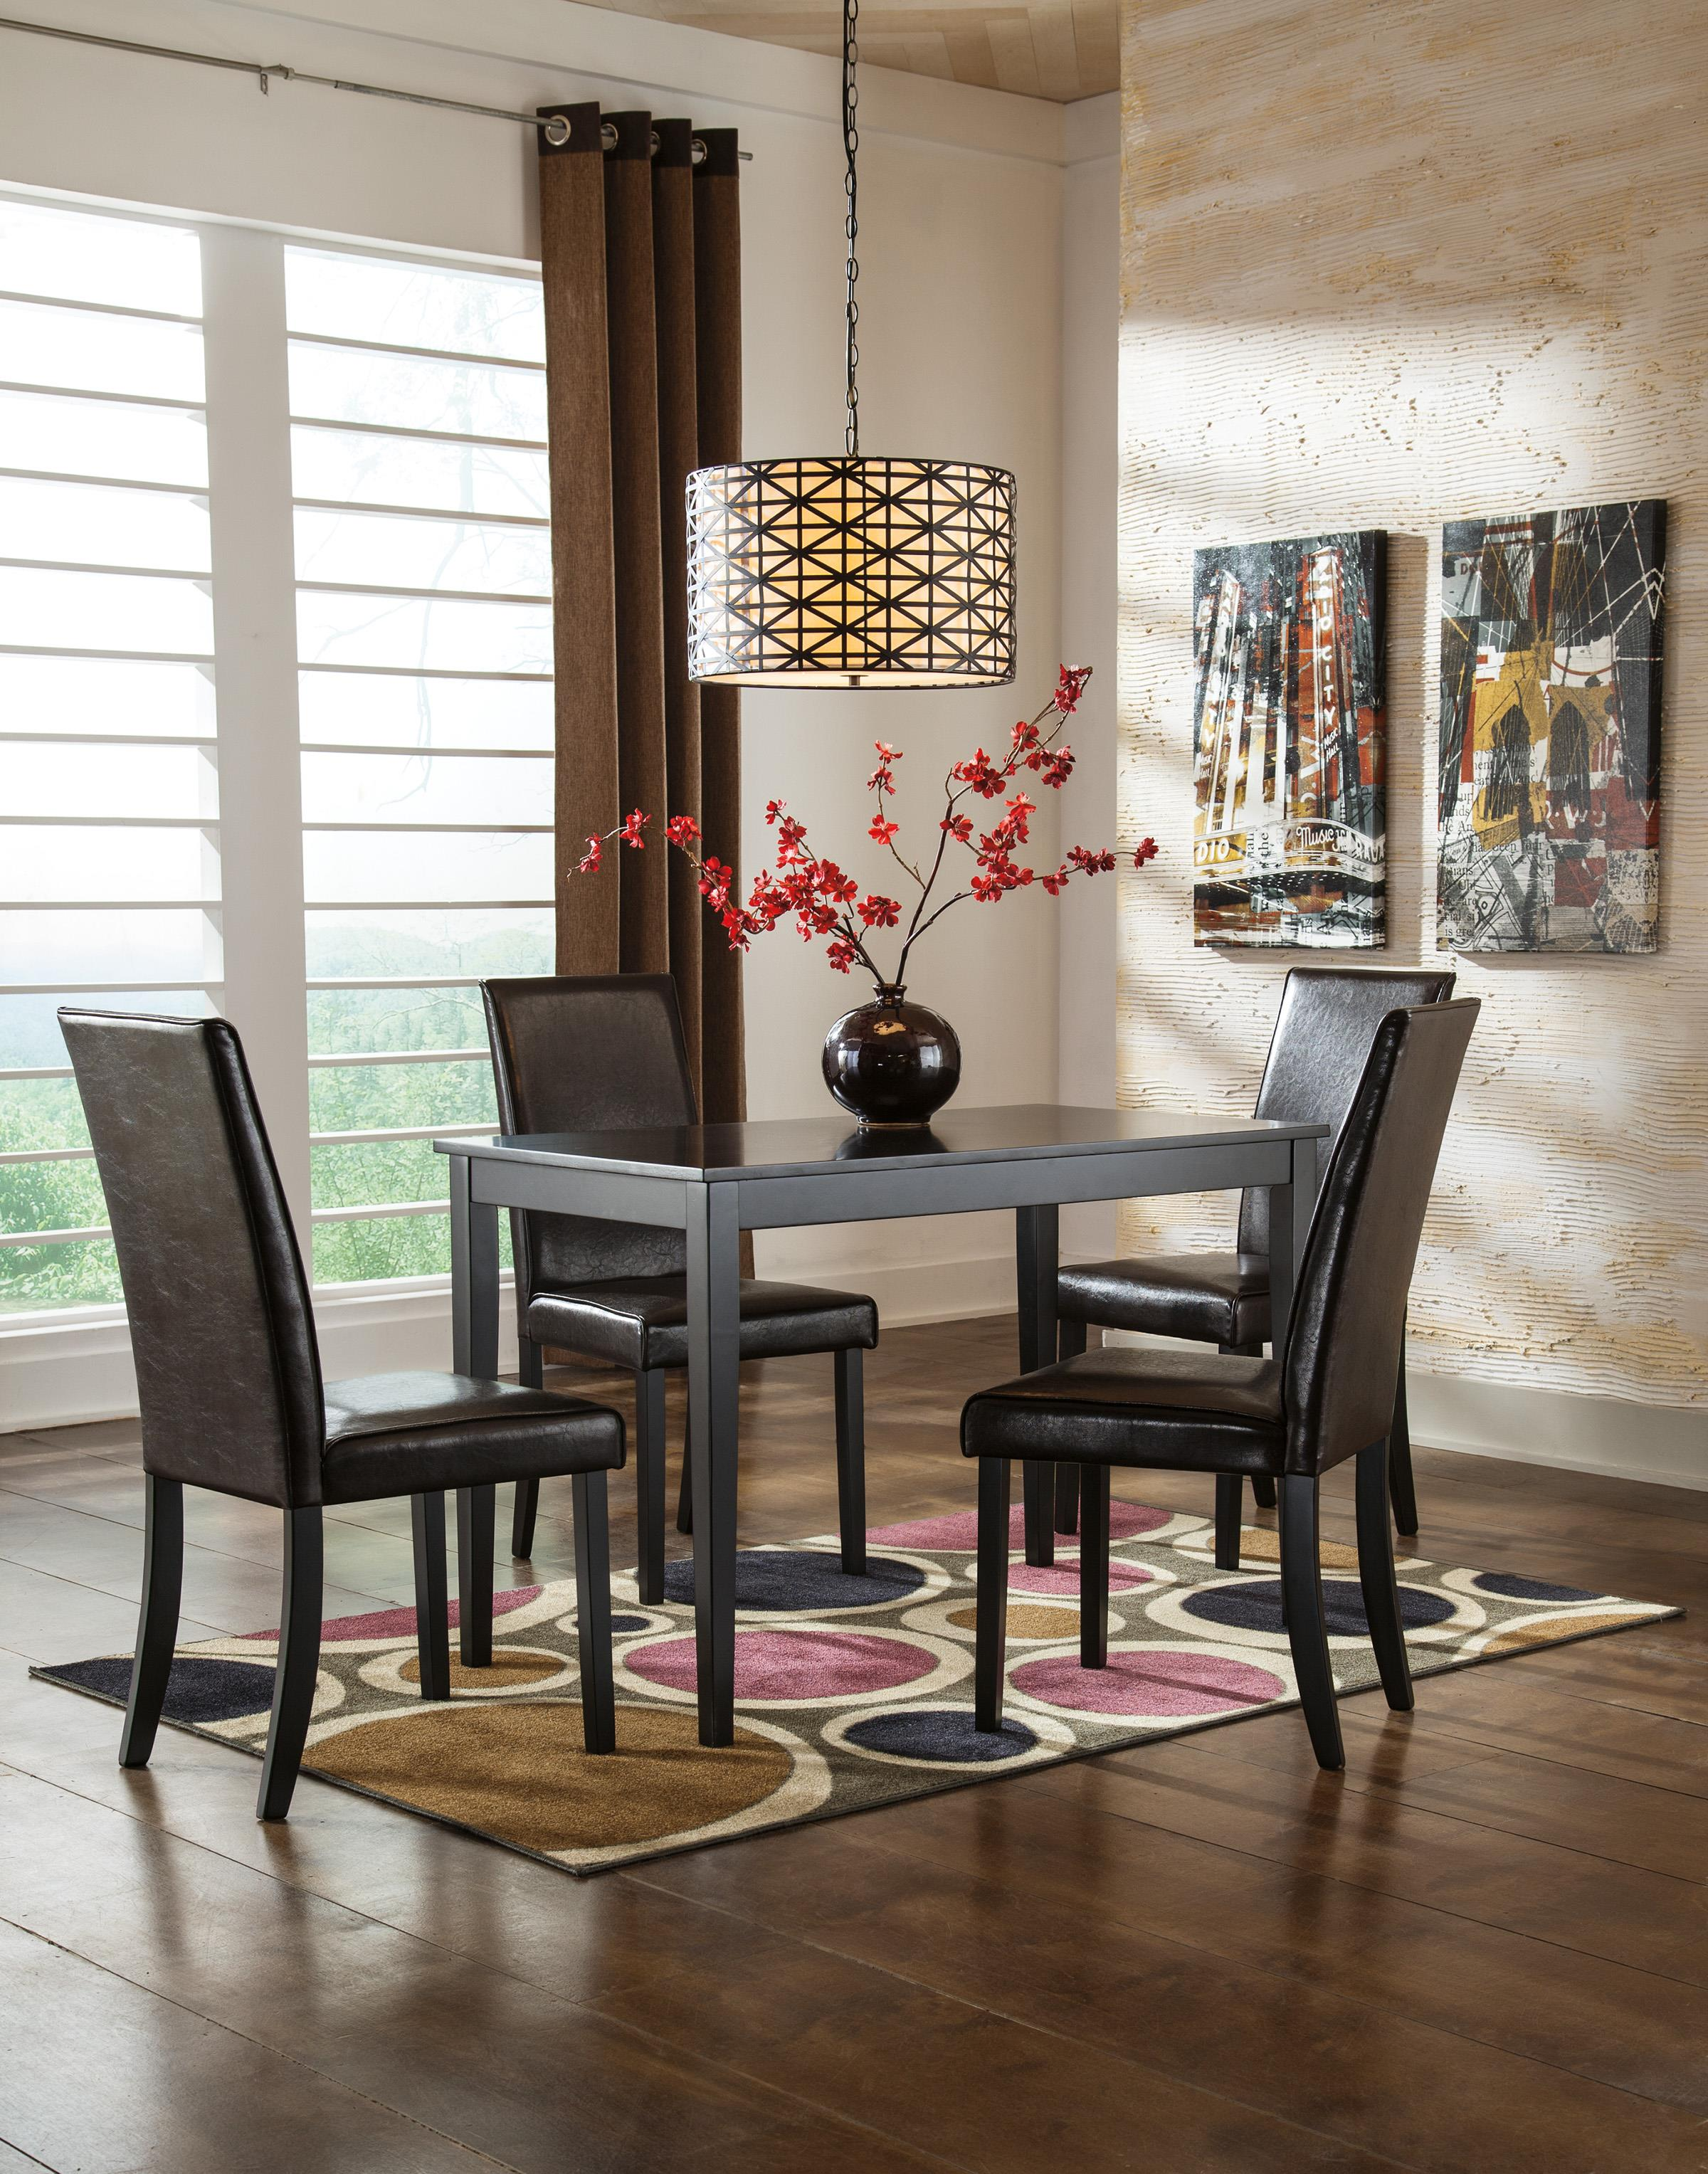 Ashley Furniture Dining Room Table Set: 5-Piece Rectangular Table Set With Brown Chairs By